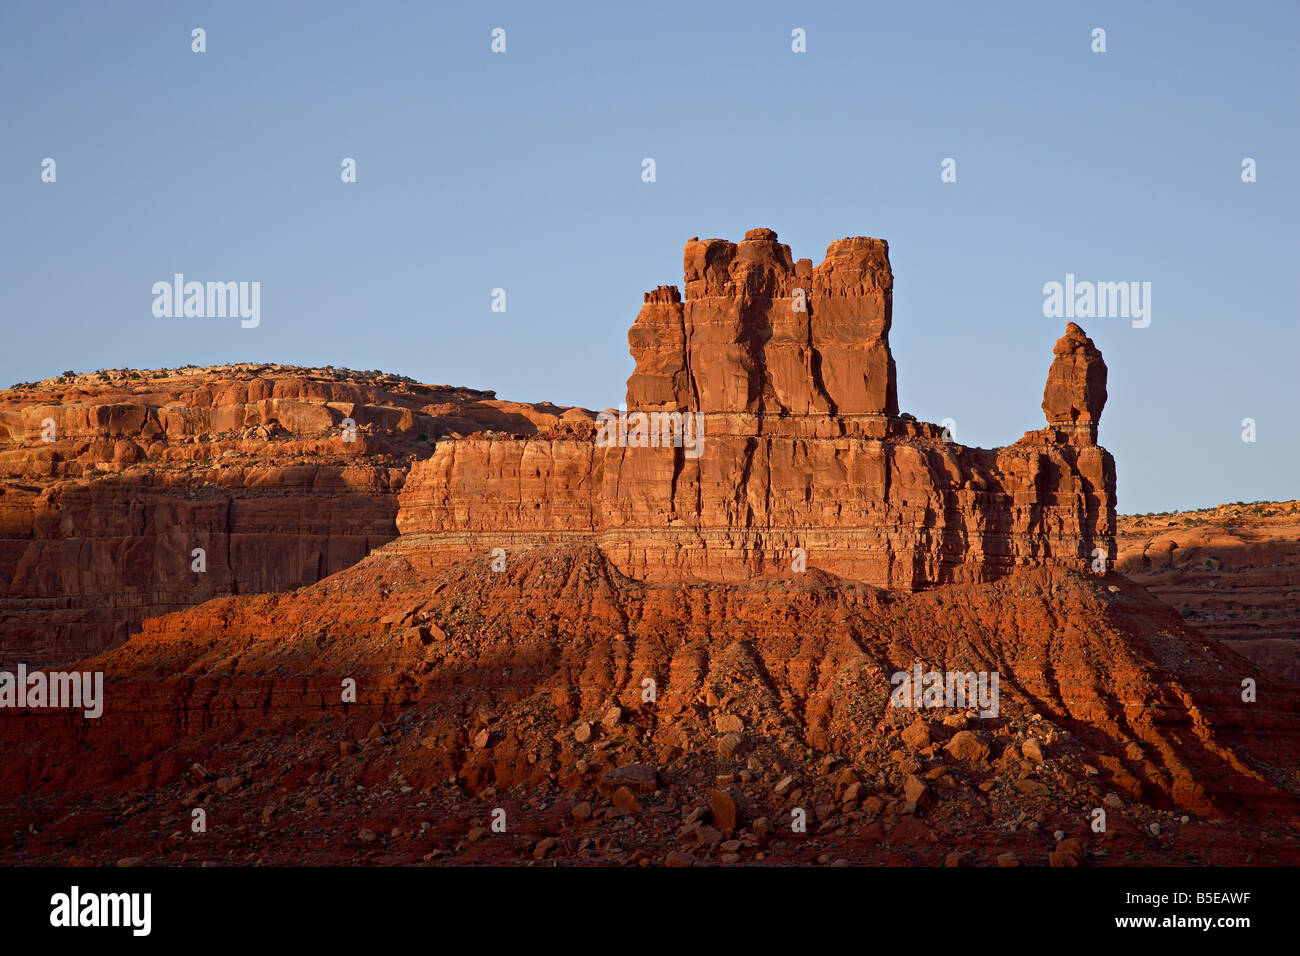 Red rock formation at sunset, Valley of the Gods, Utah, USA, North America - Stock Image